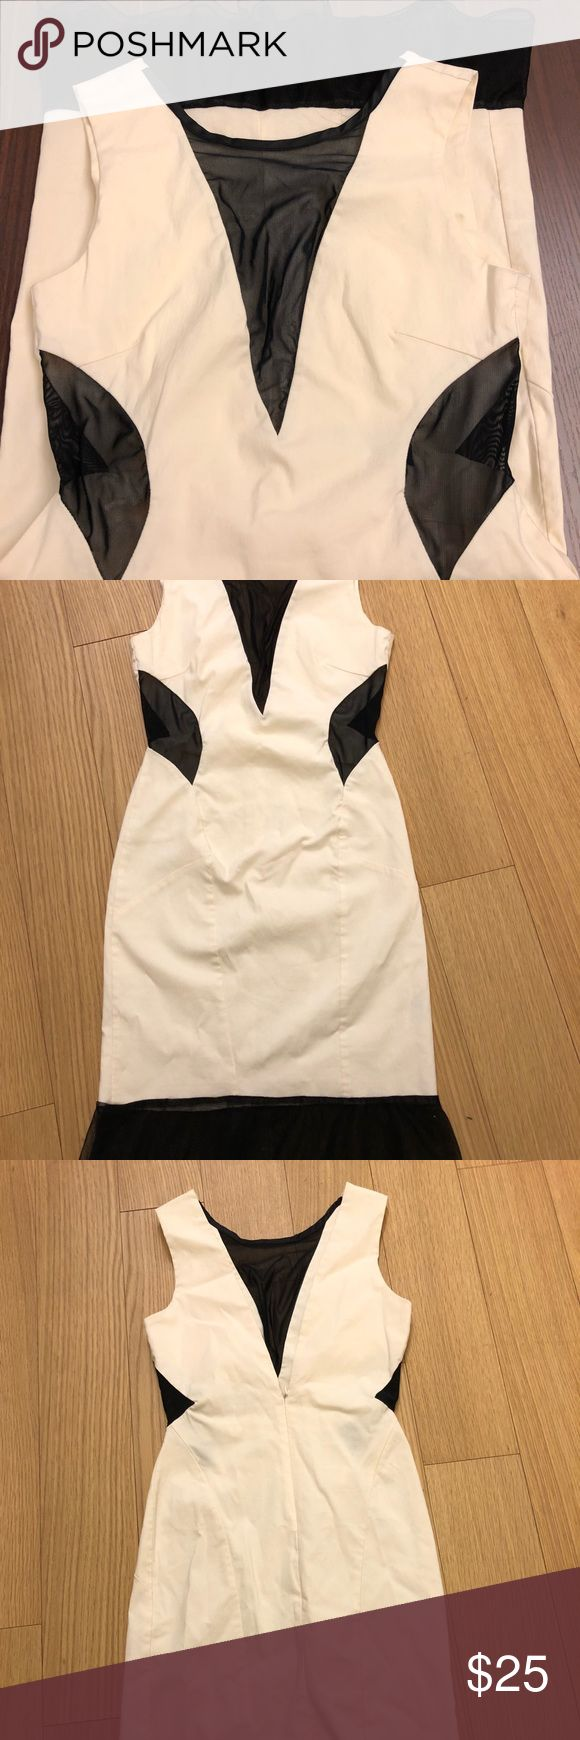 Cute Cut Out Dress! White and black cutout dress, sexy, stretchy, great for a night out! Miss Selfridge Dresses